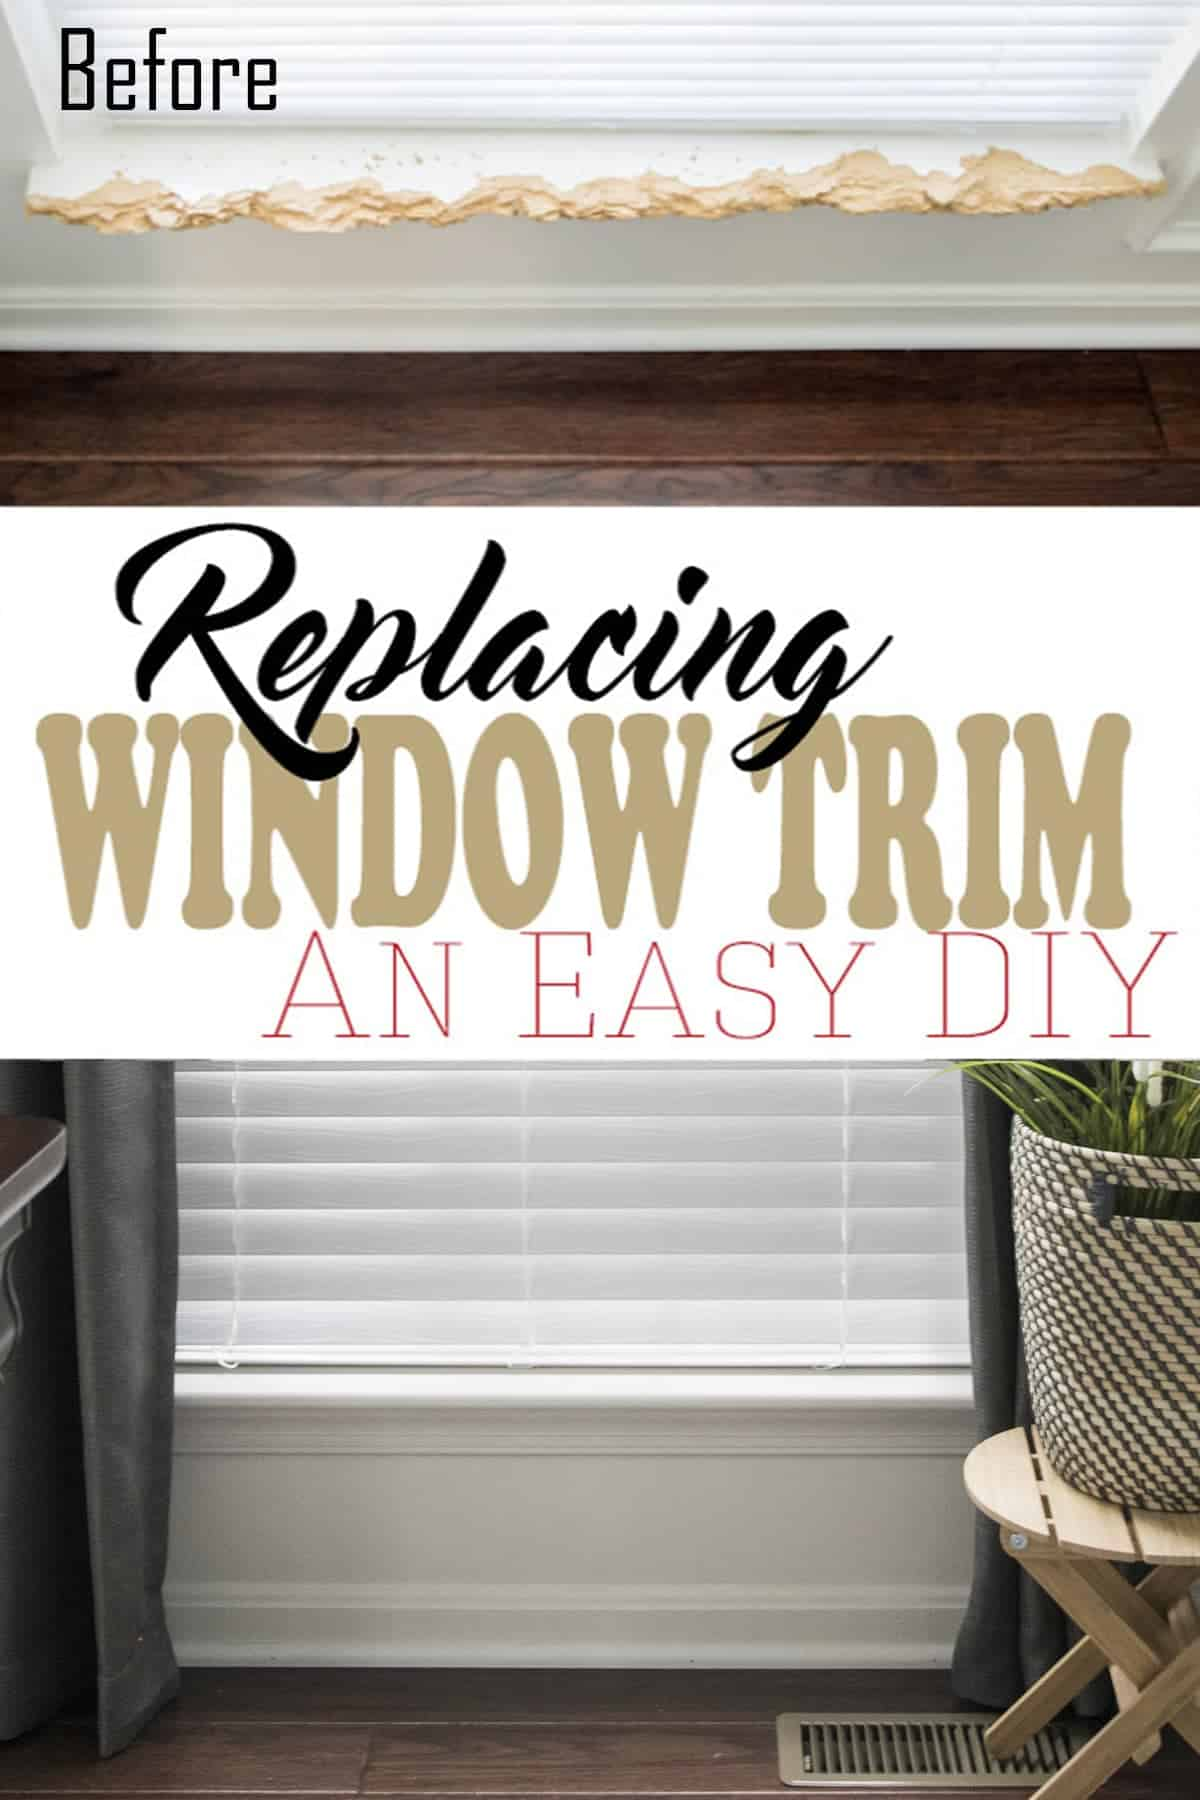 How to Repair the Interior Window Sill and Trim -